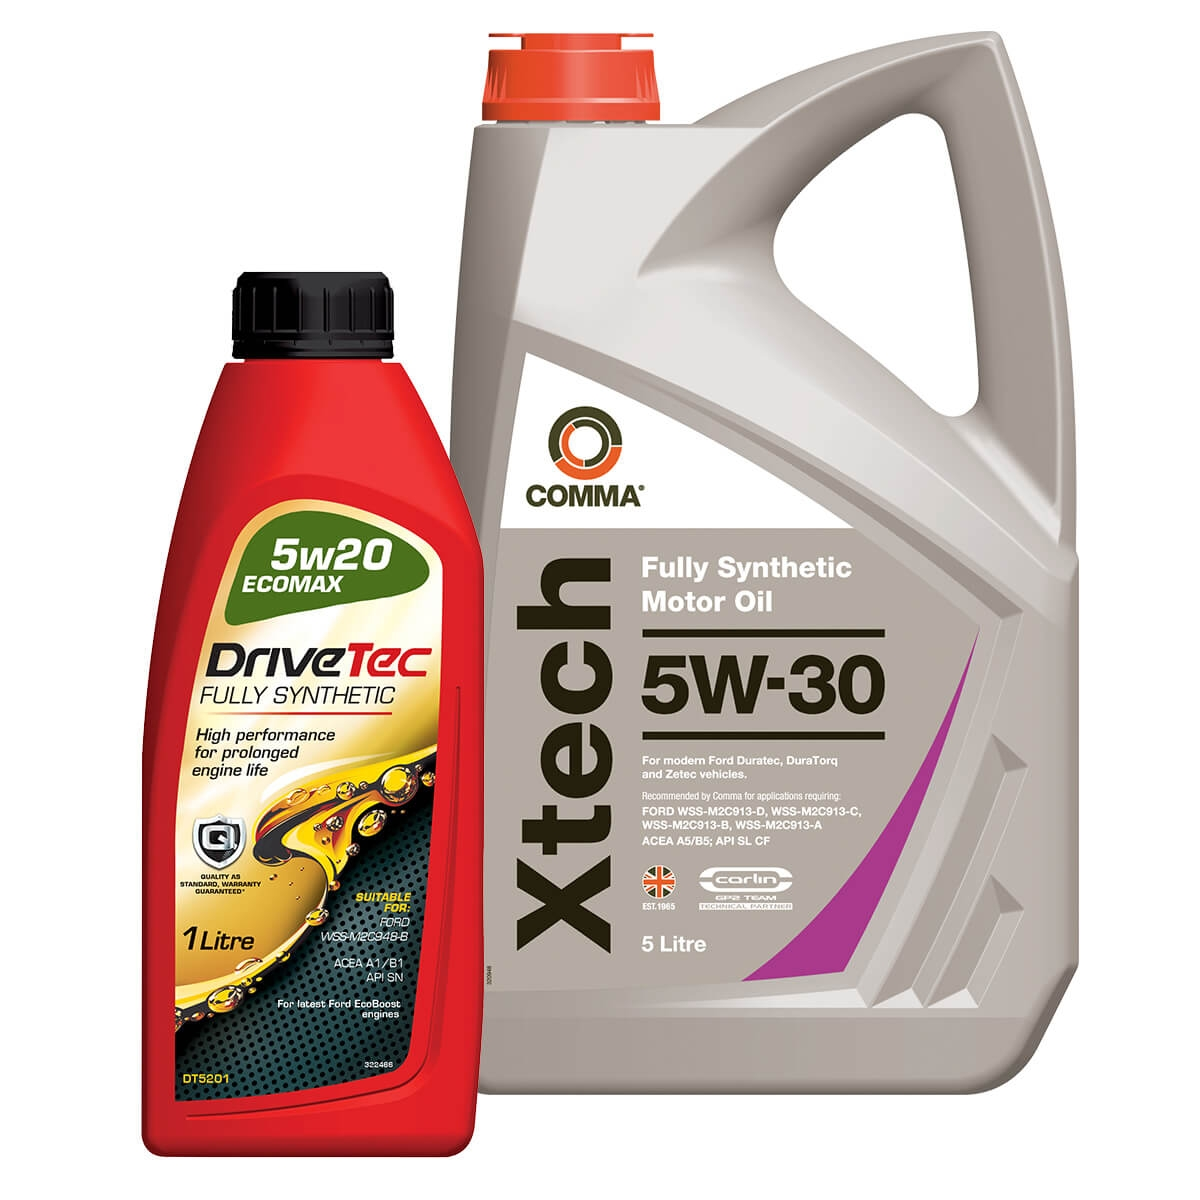 DS DS5 Engine Oil